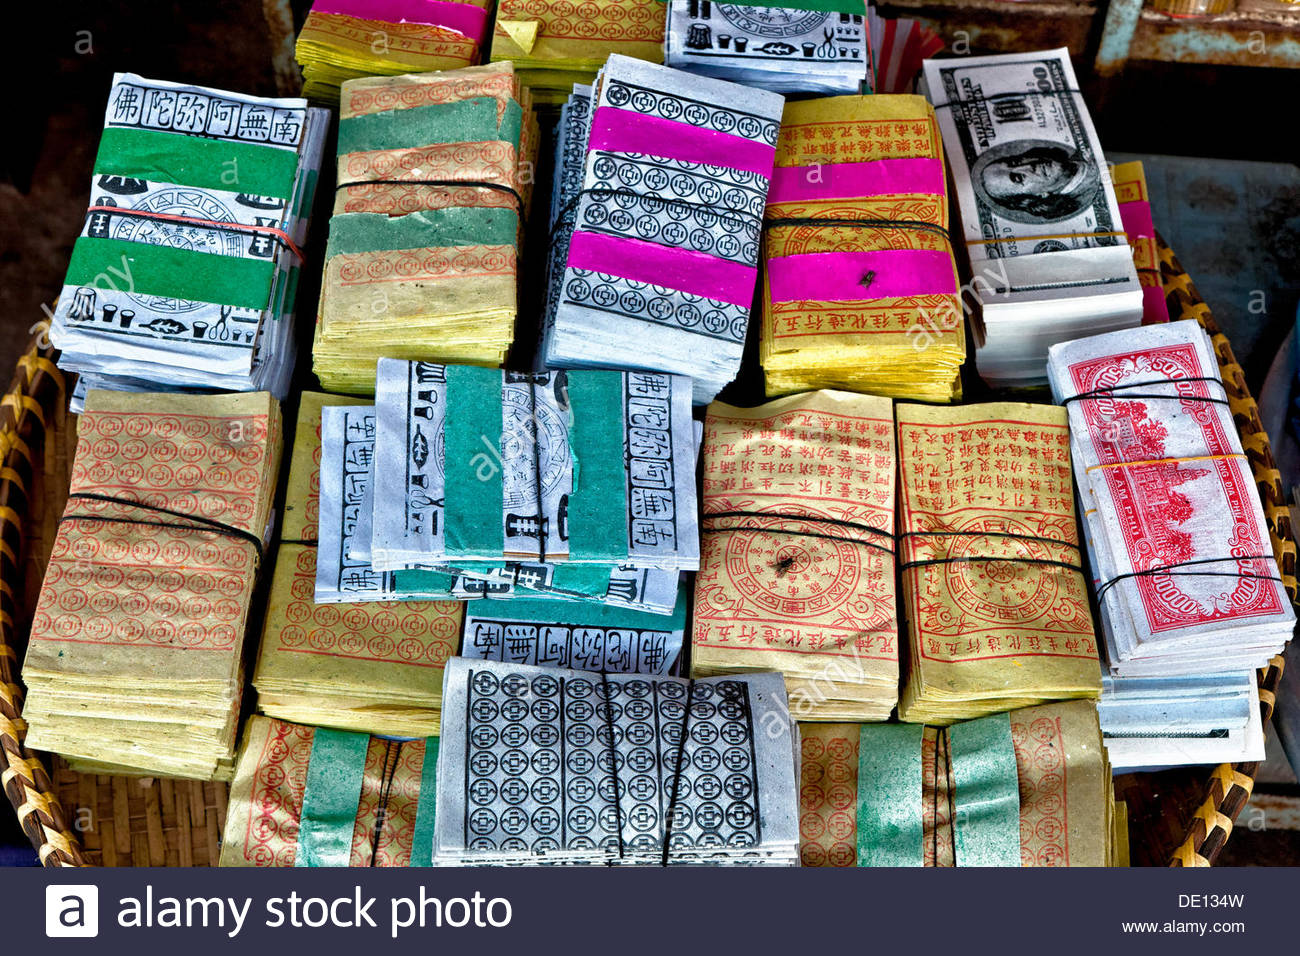 Counterfeit money, money for ceremonies, Vietnam, Southeast Asia, Asia - Stock Image